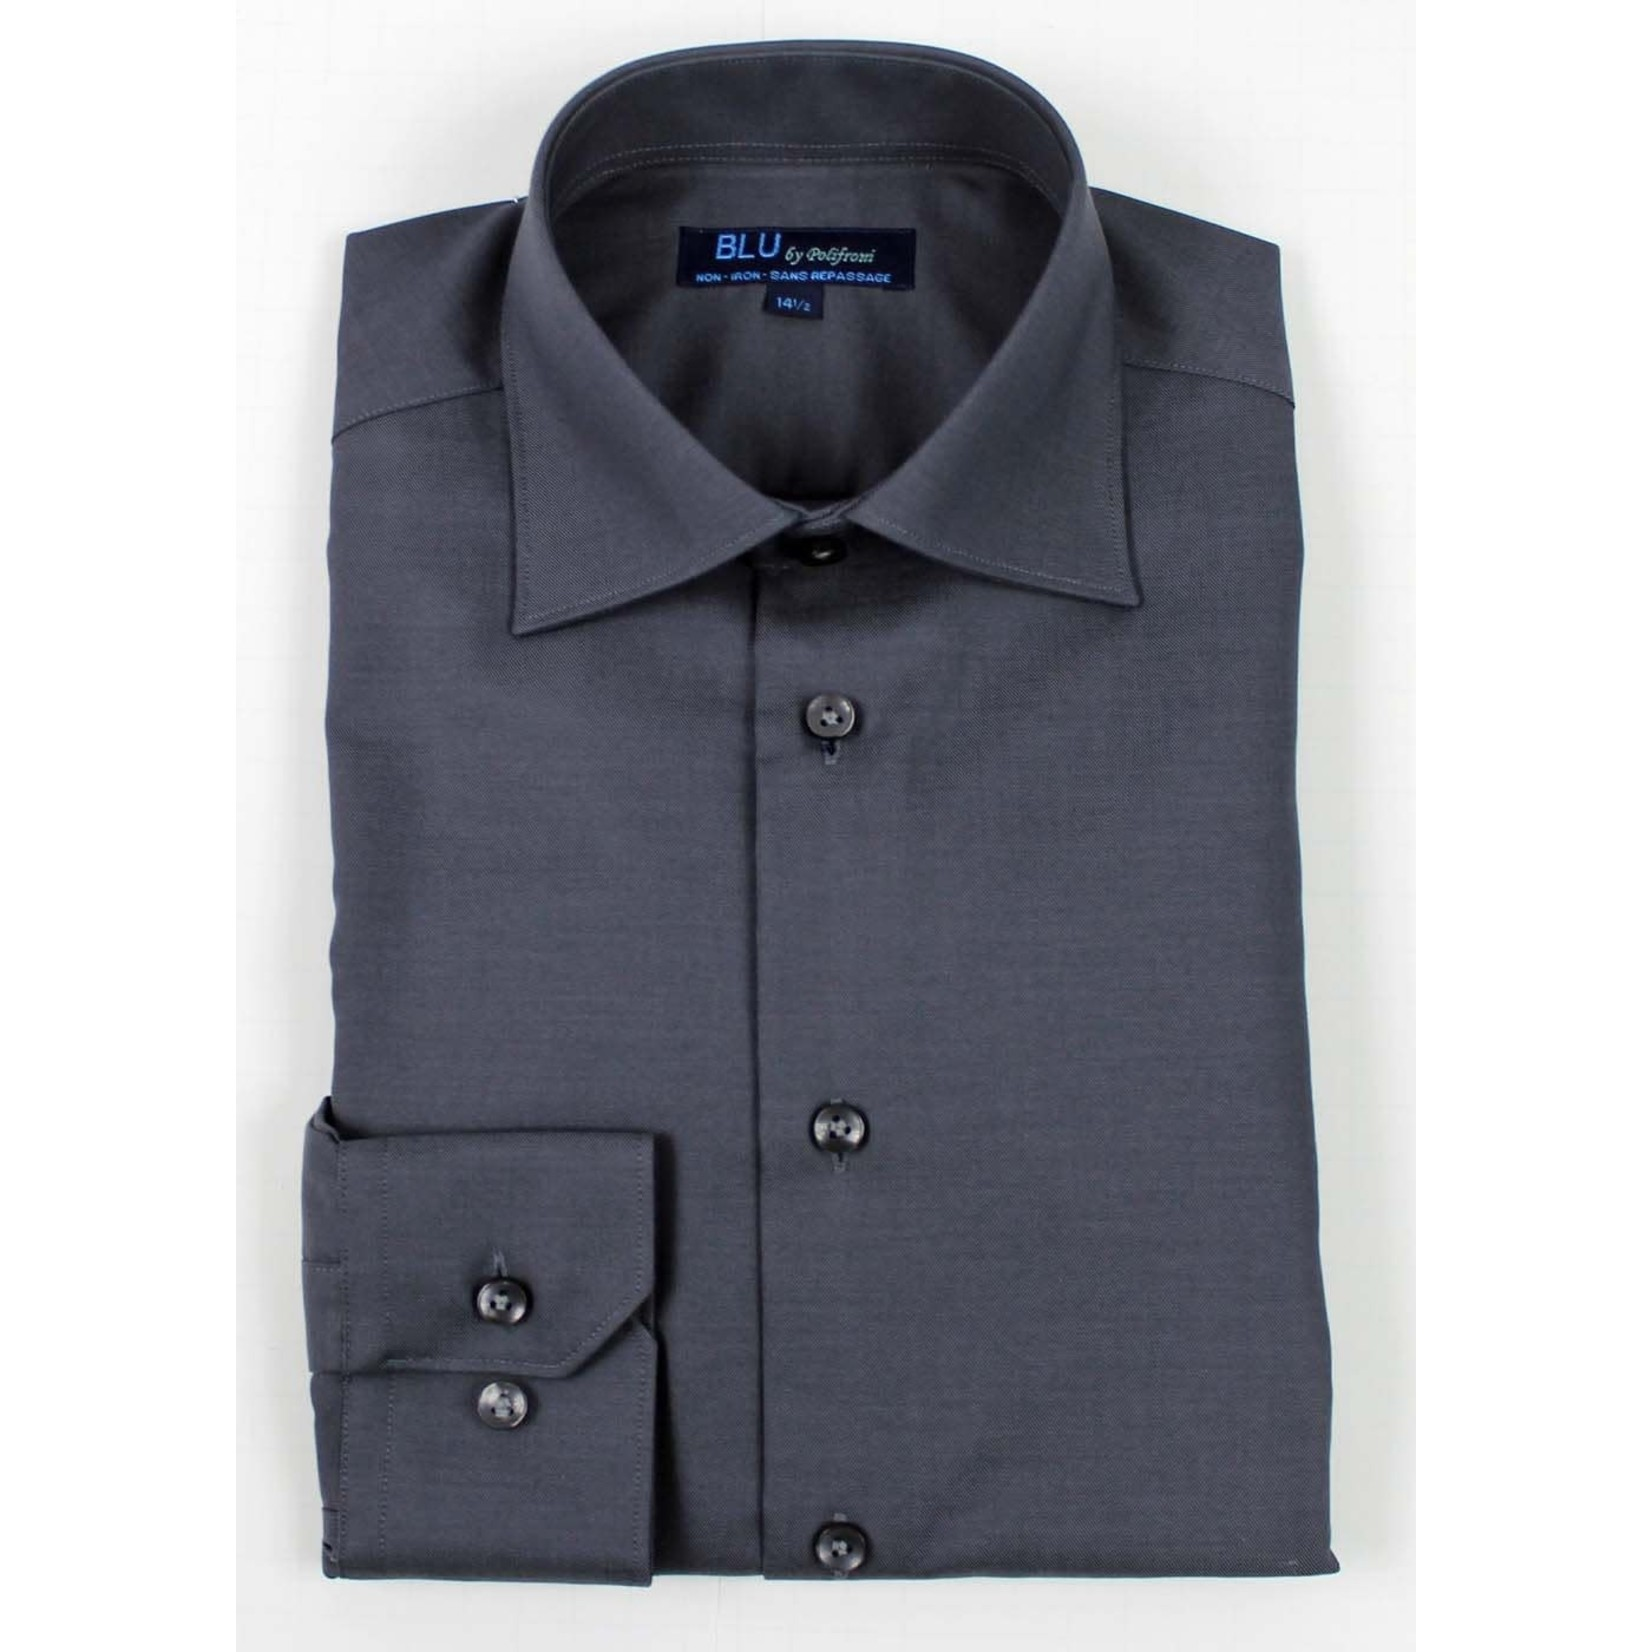 Polifroni Blu-360M Miami Non-Iron Dress Shirt 34 Charcoal